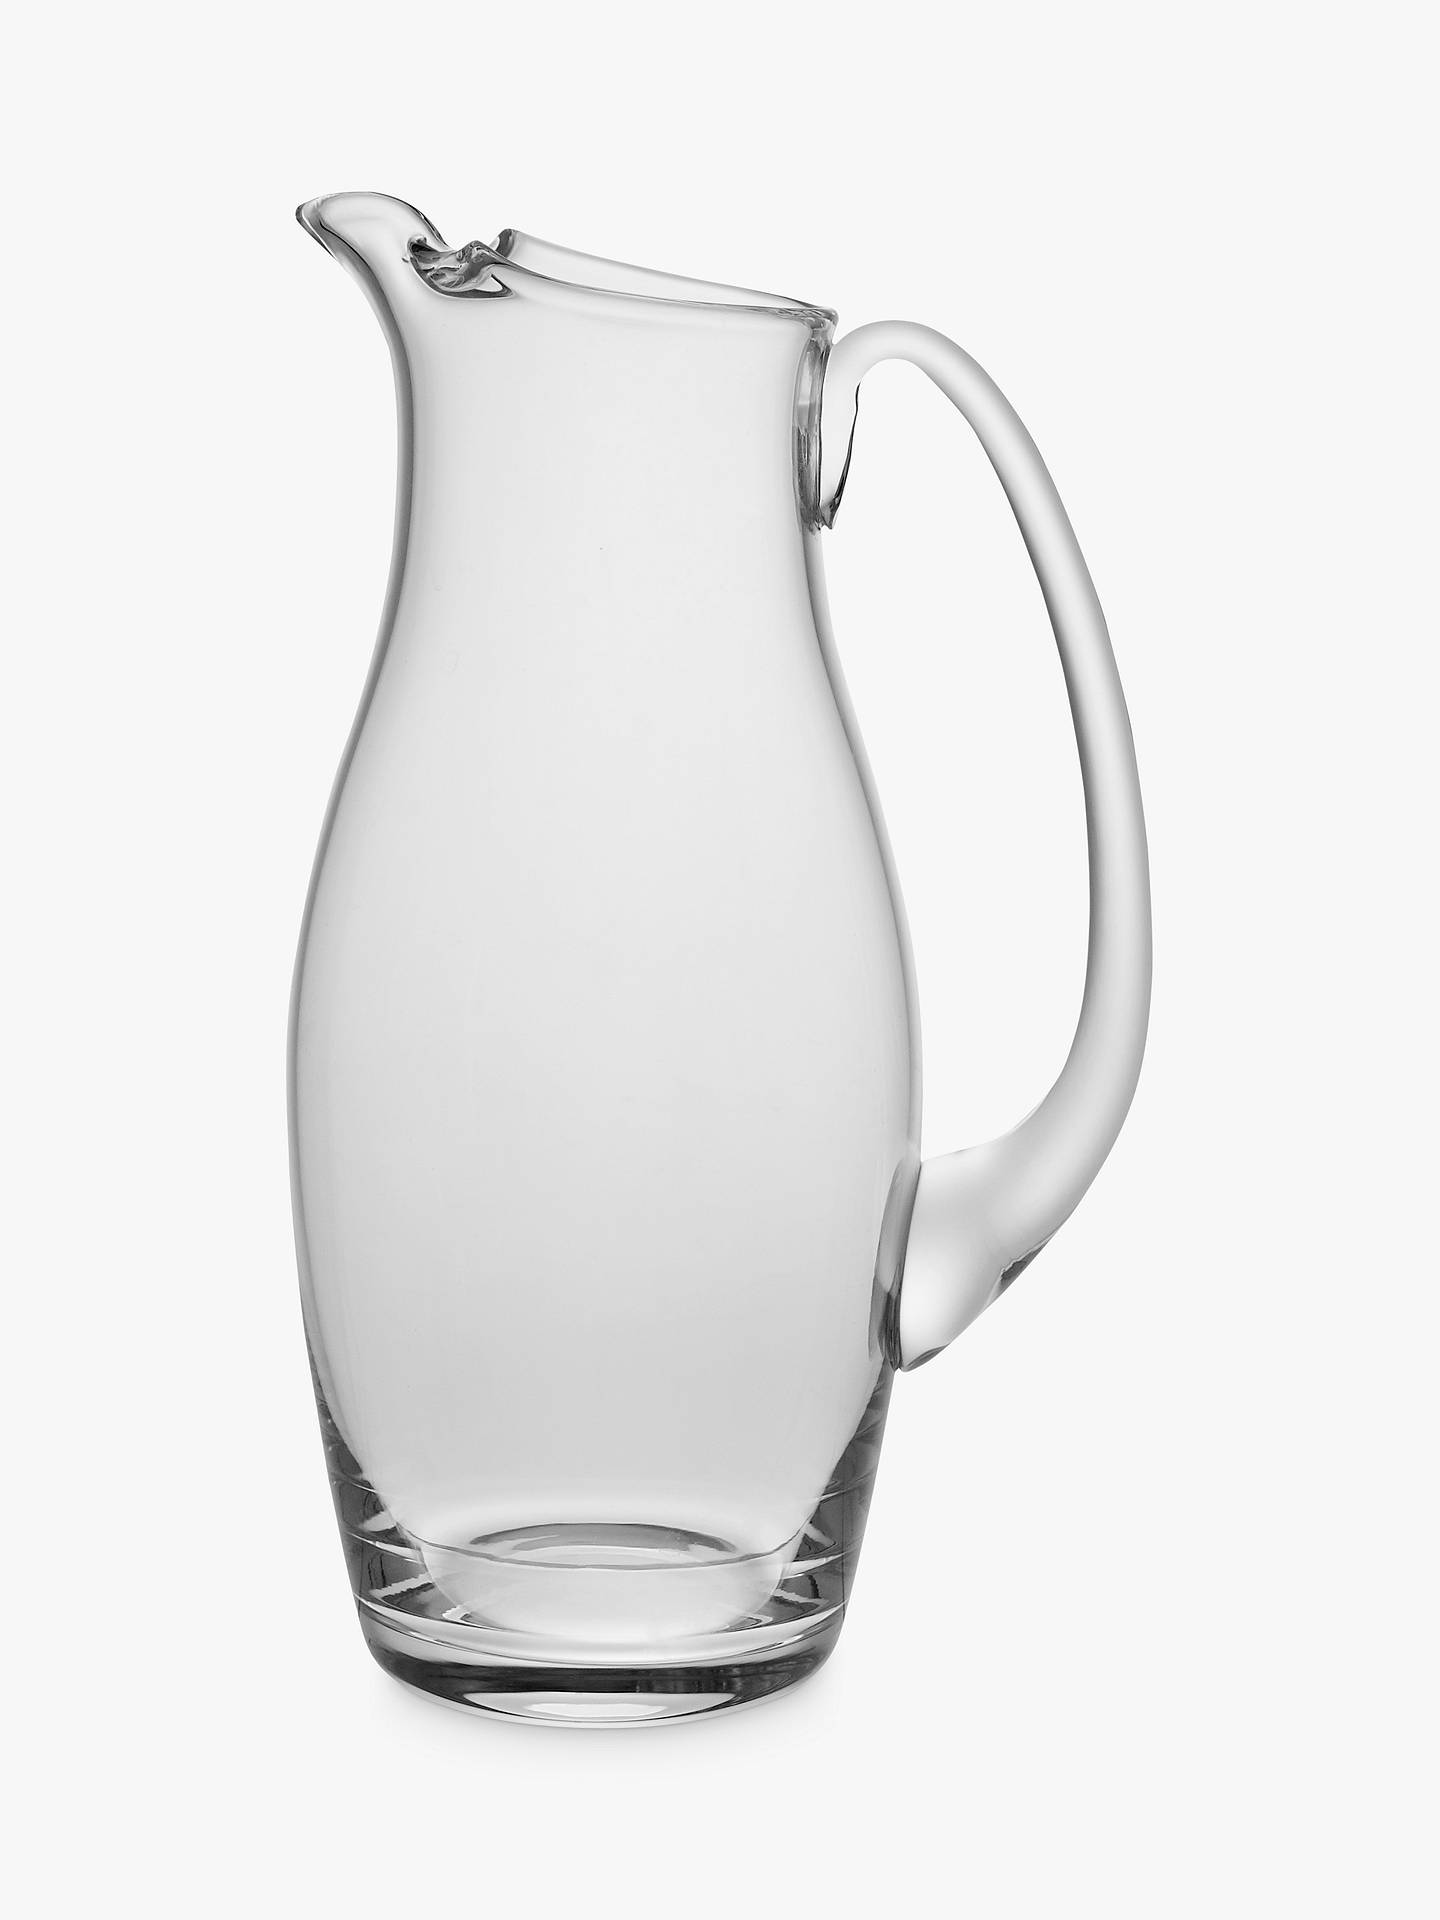 BuyJohn Lewis & Partners Connoisseur Jug, Clear, 435ml Online at johnlewis.com